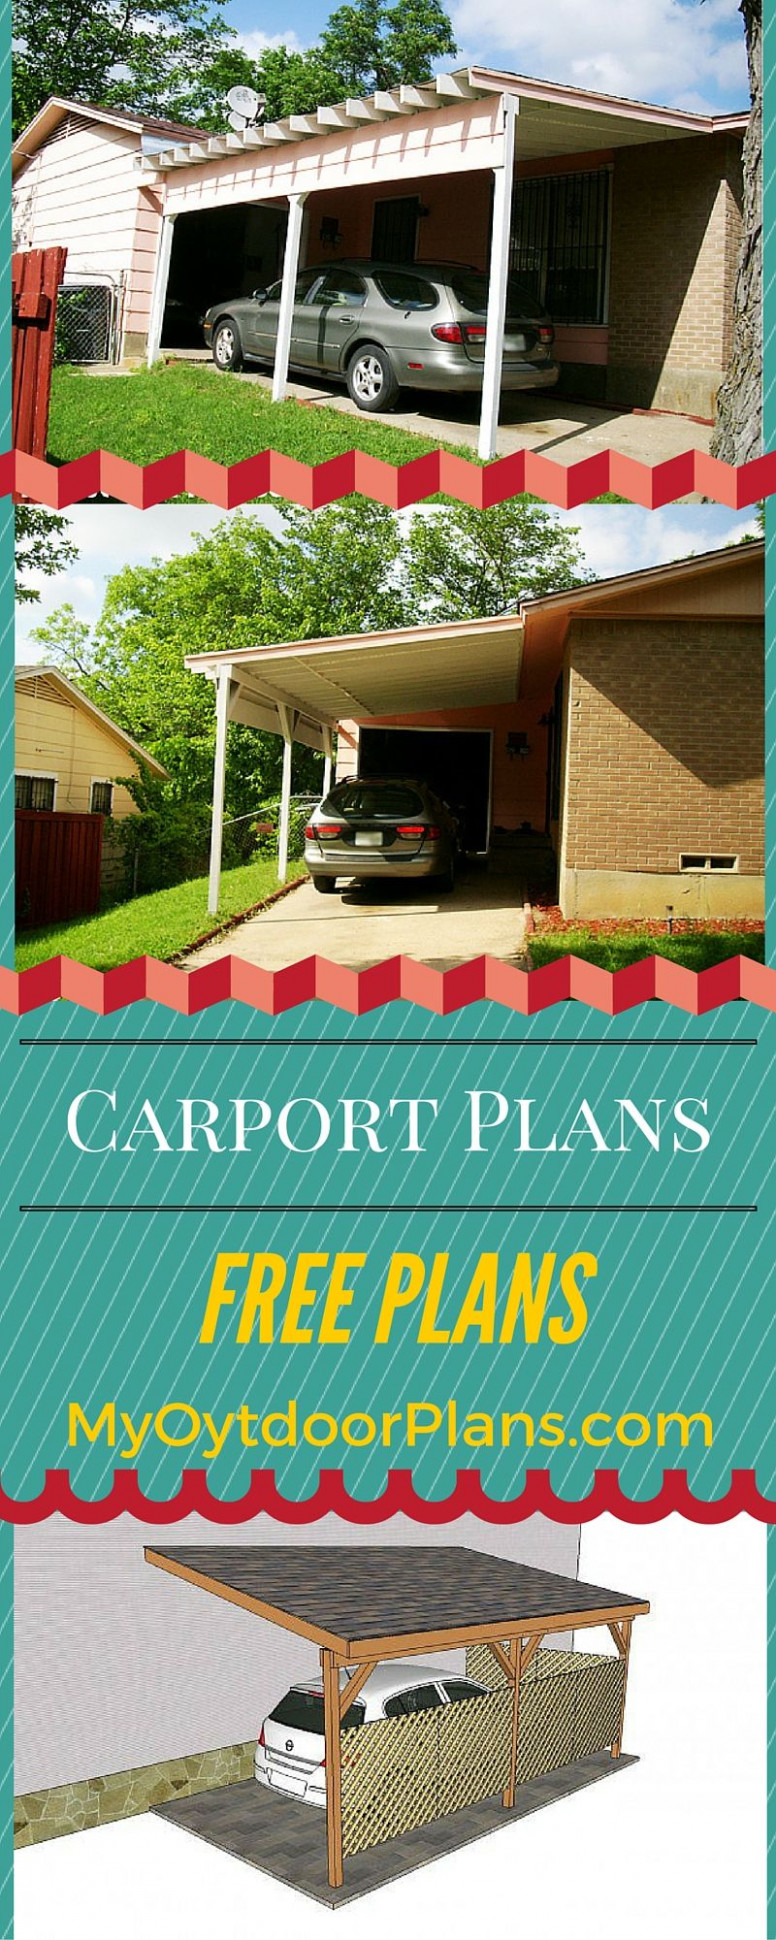 How To Build An Attached Carport! Free Plans And Easy To ..